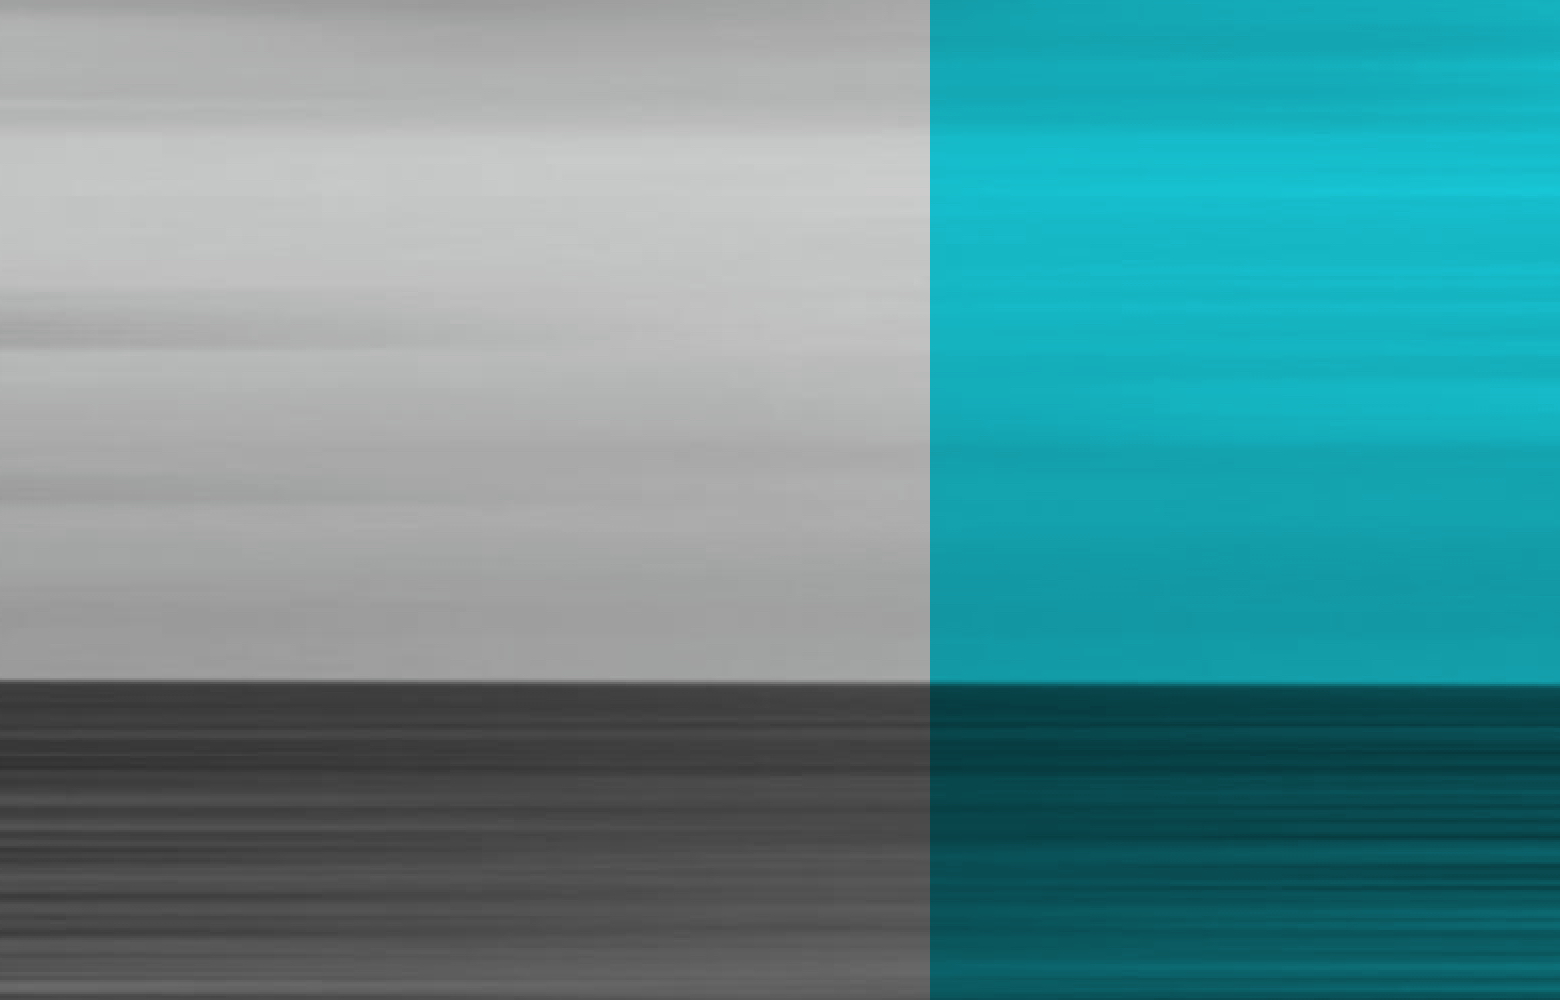 Abstract illustration, grays and cyans.